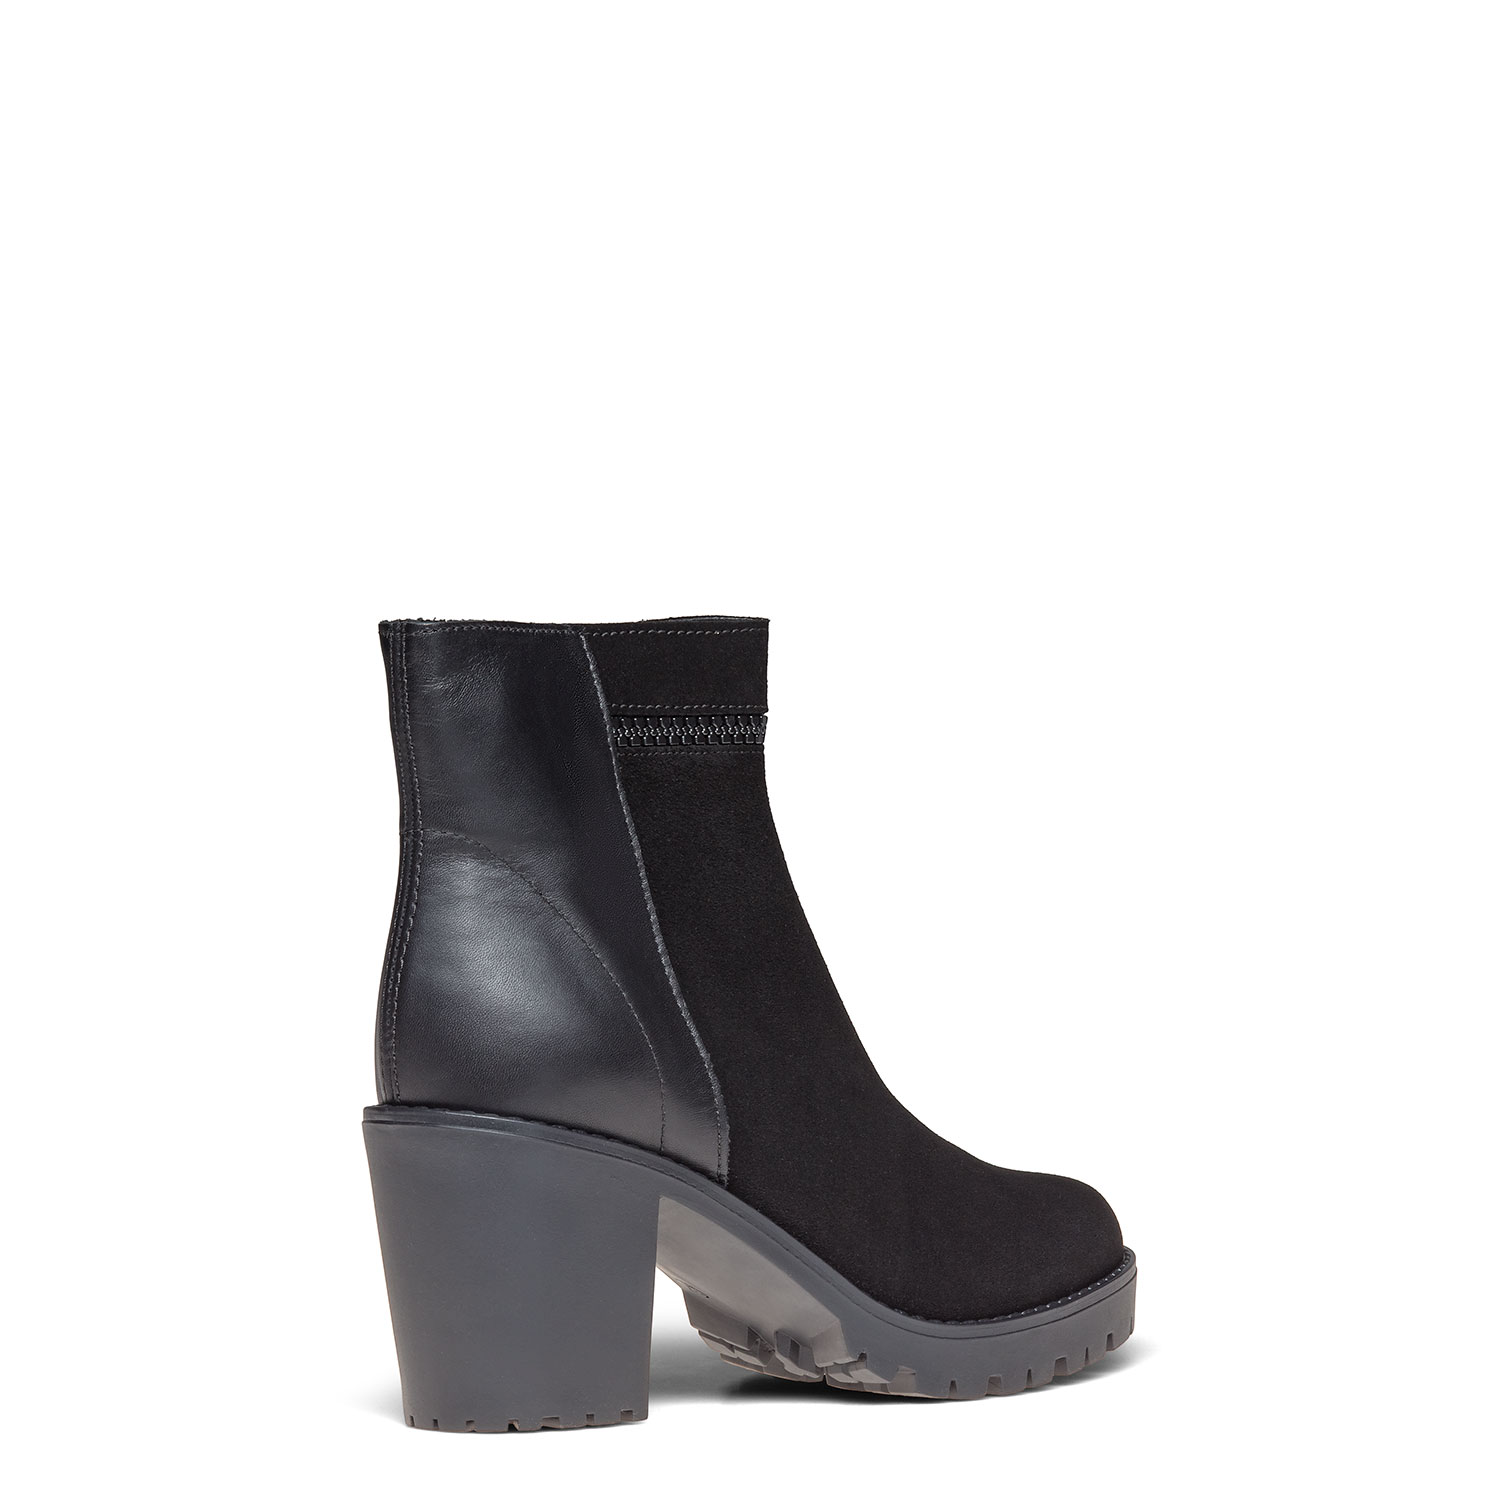 Women's ankle boots CARLO PAZOLINI SI-LIL1-1